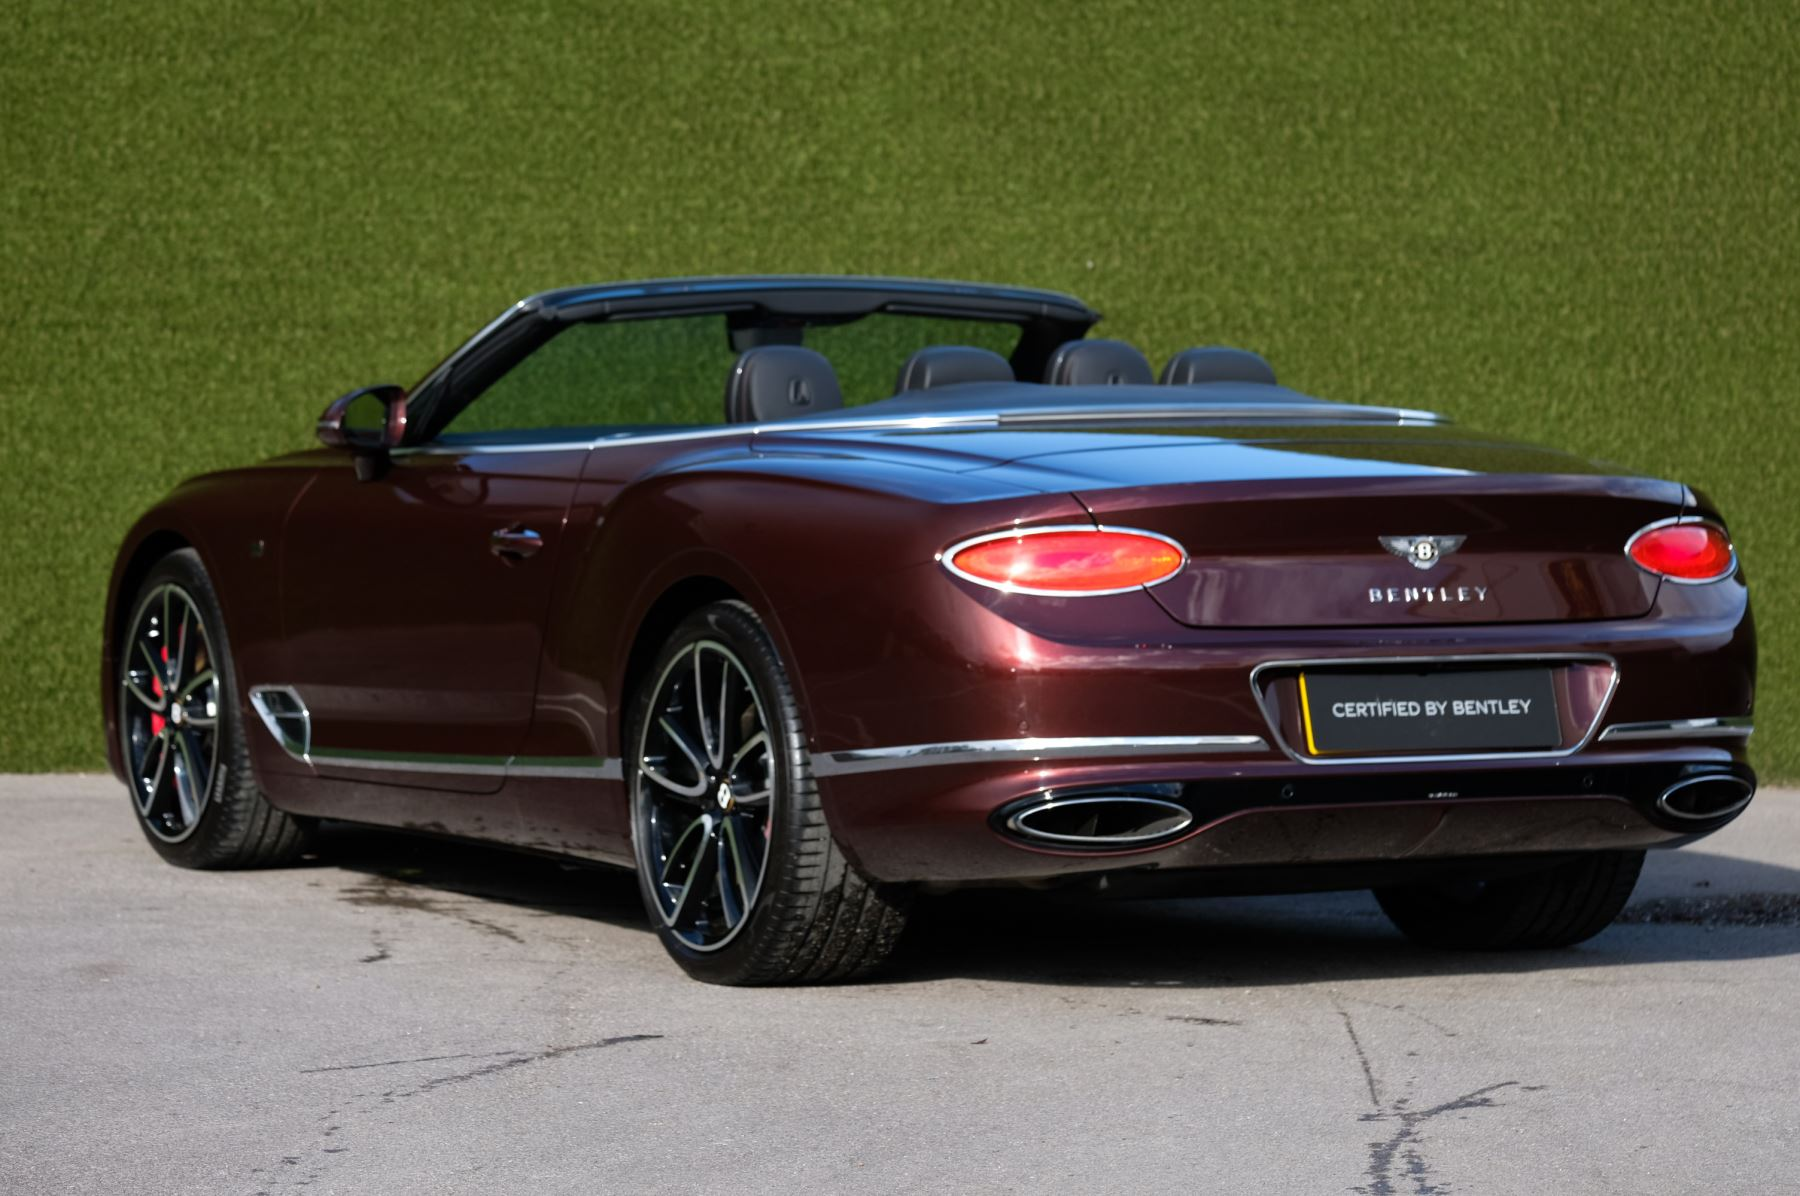 Bentley Continental GTC 6.0 W12 - First Edition Specification image 5